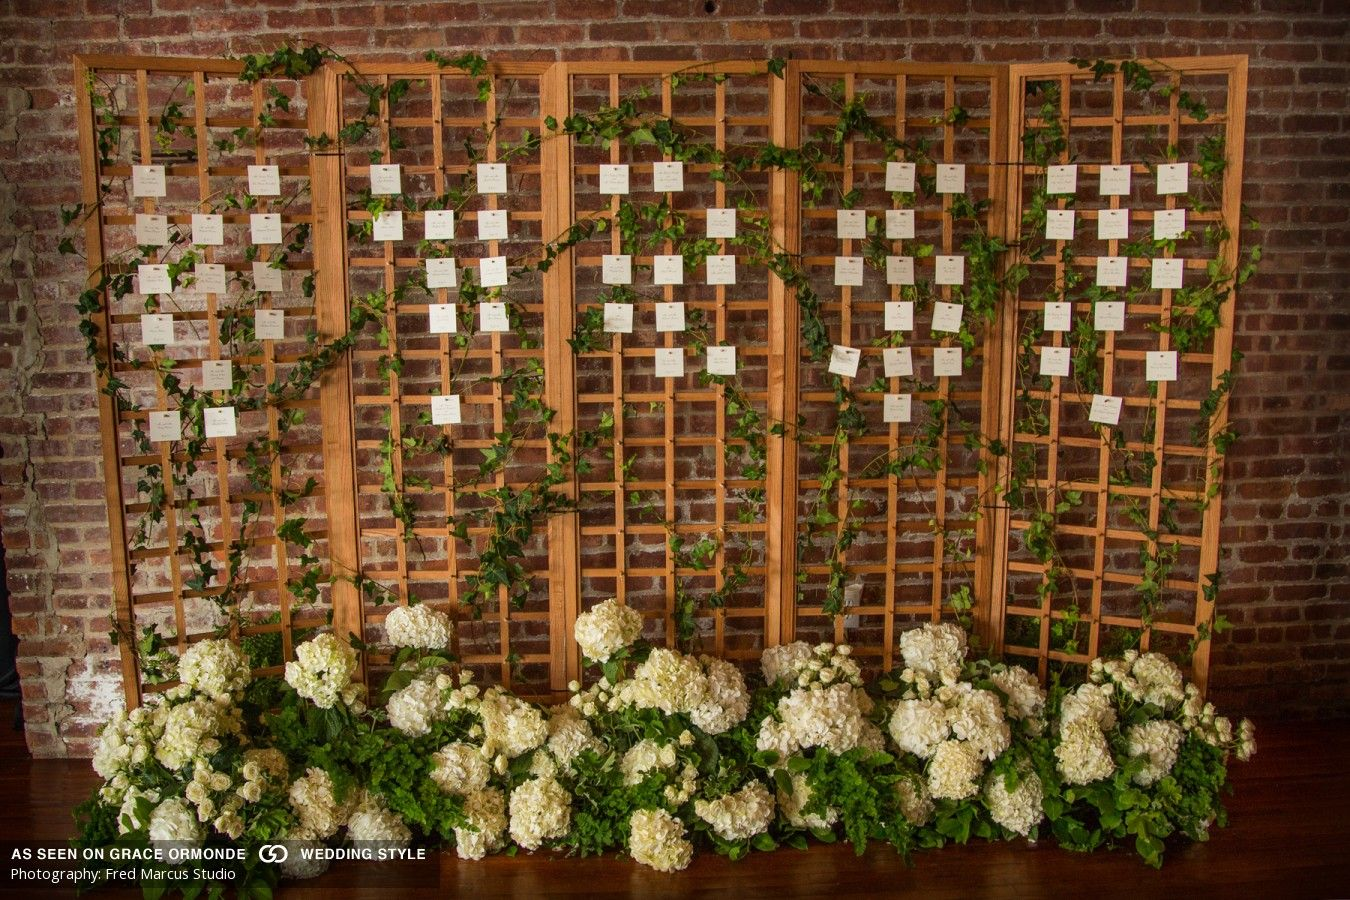 Photos Of A Real Wedding At The Liberty Warehouse In Brooklyn New York Liberty Warehouse Seating Chart Wedding Wedding